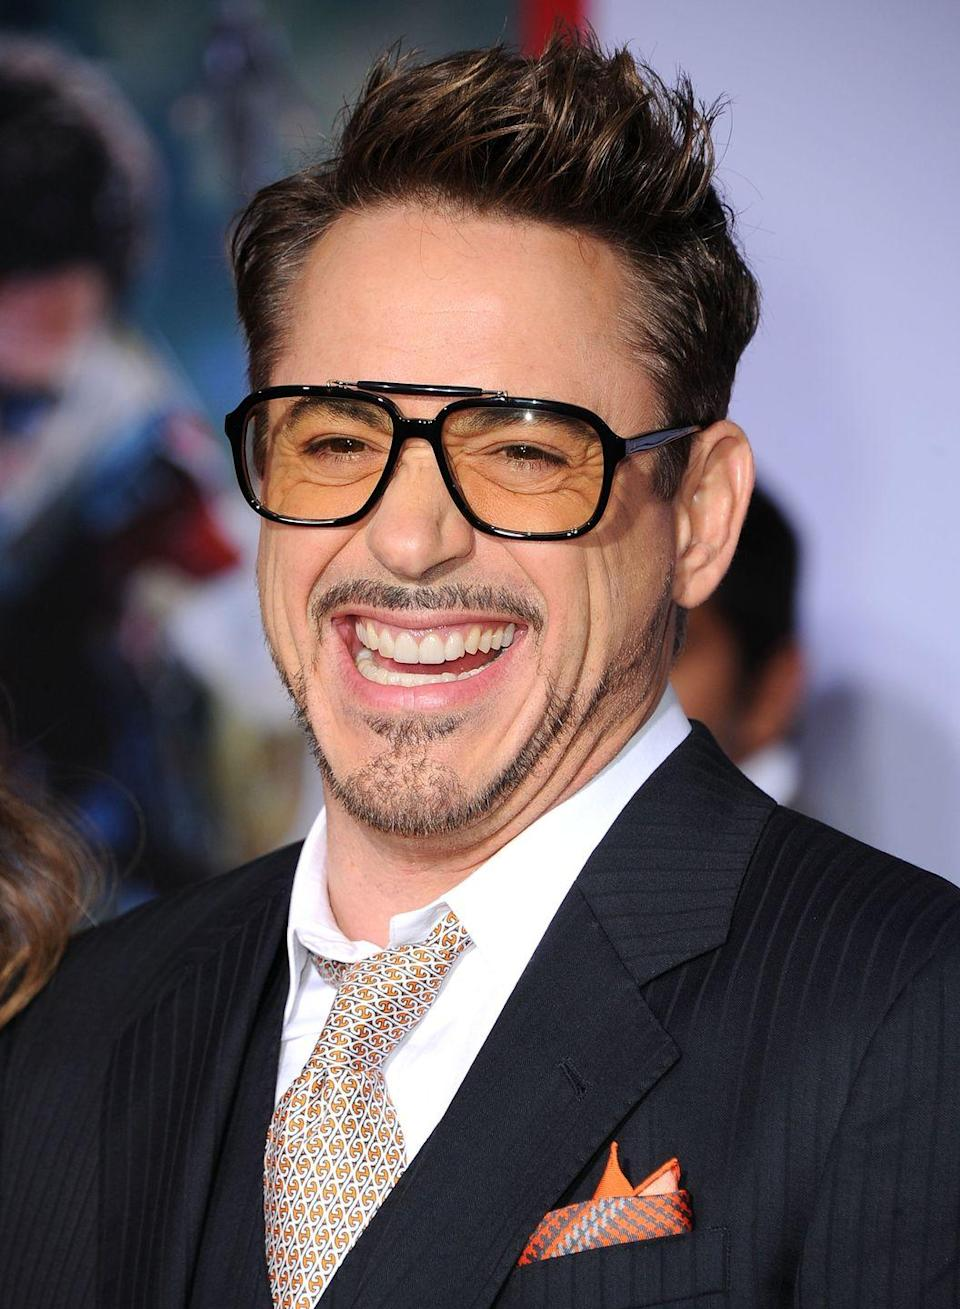 <p>Iron Man himself has long been known to sport the iconic Tony Stark goatee, on and off screen. His thin mustache is the essential connector for the whole look. </p>